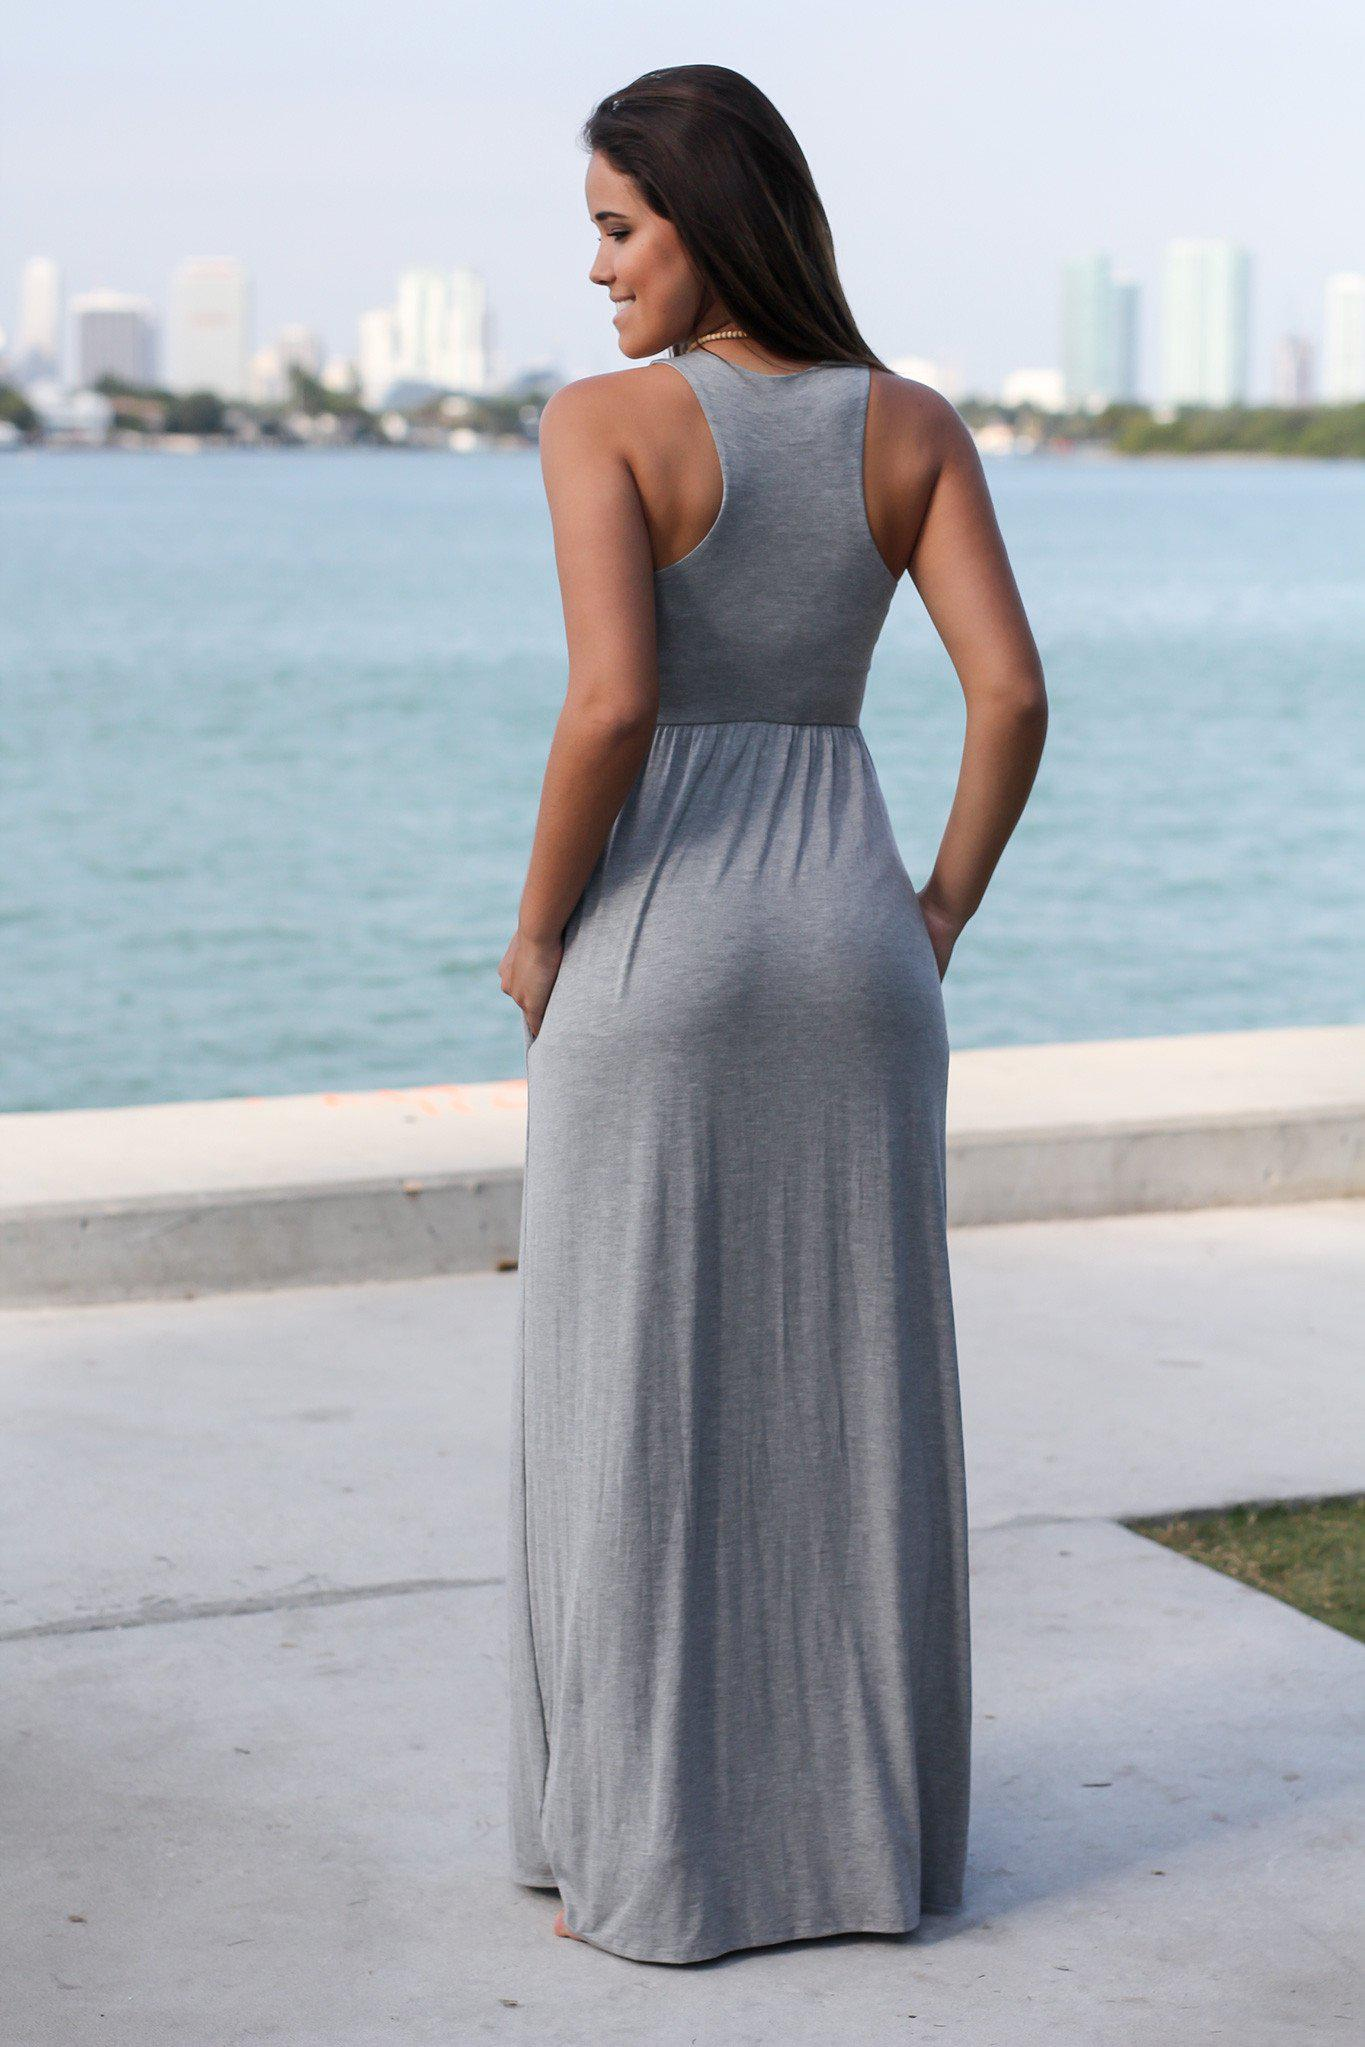 Heather Gray Maxi Dress with Pockets